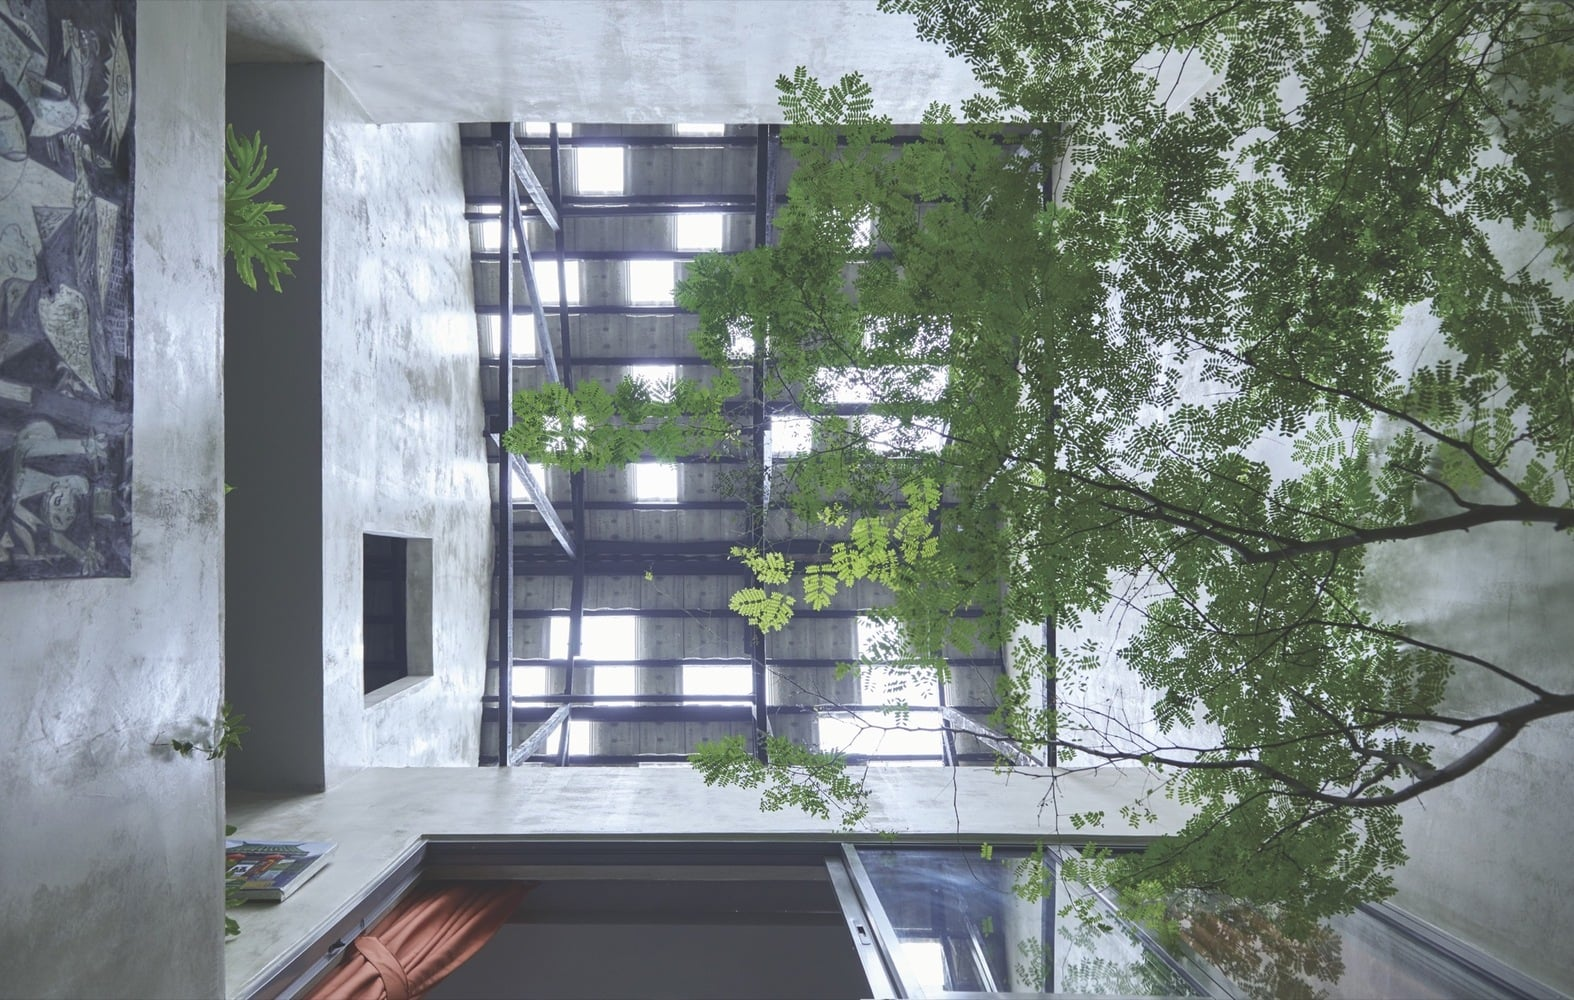 Leafy branches shade the interior of the home from sunlight streaming through the skylight.